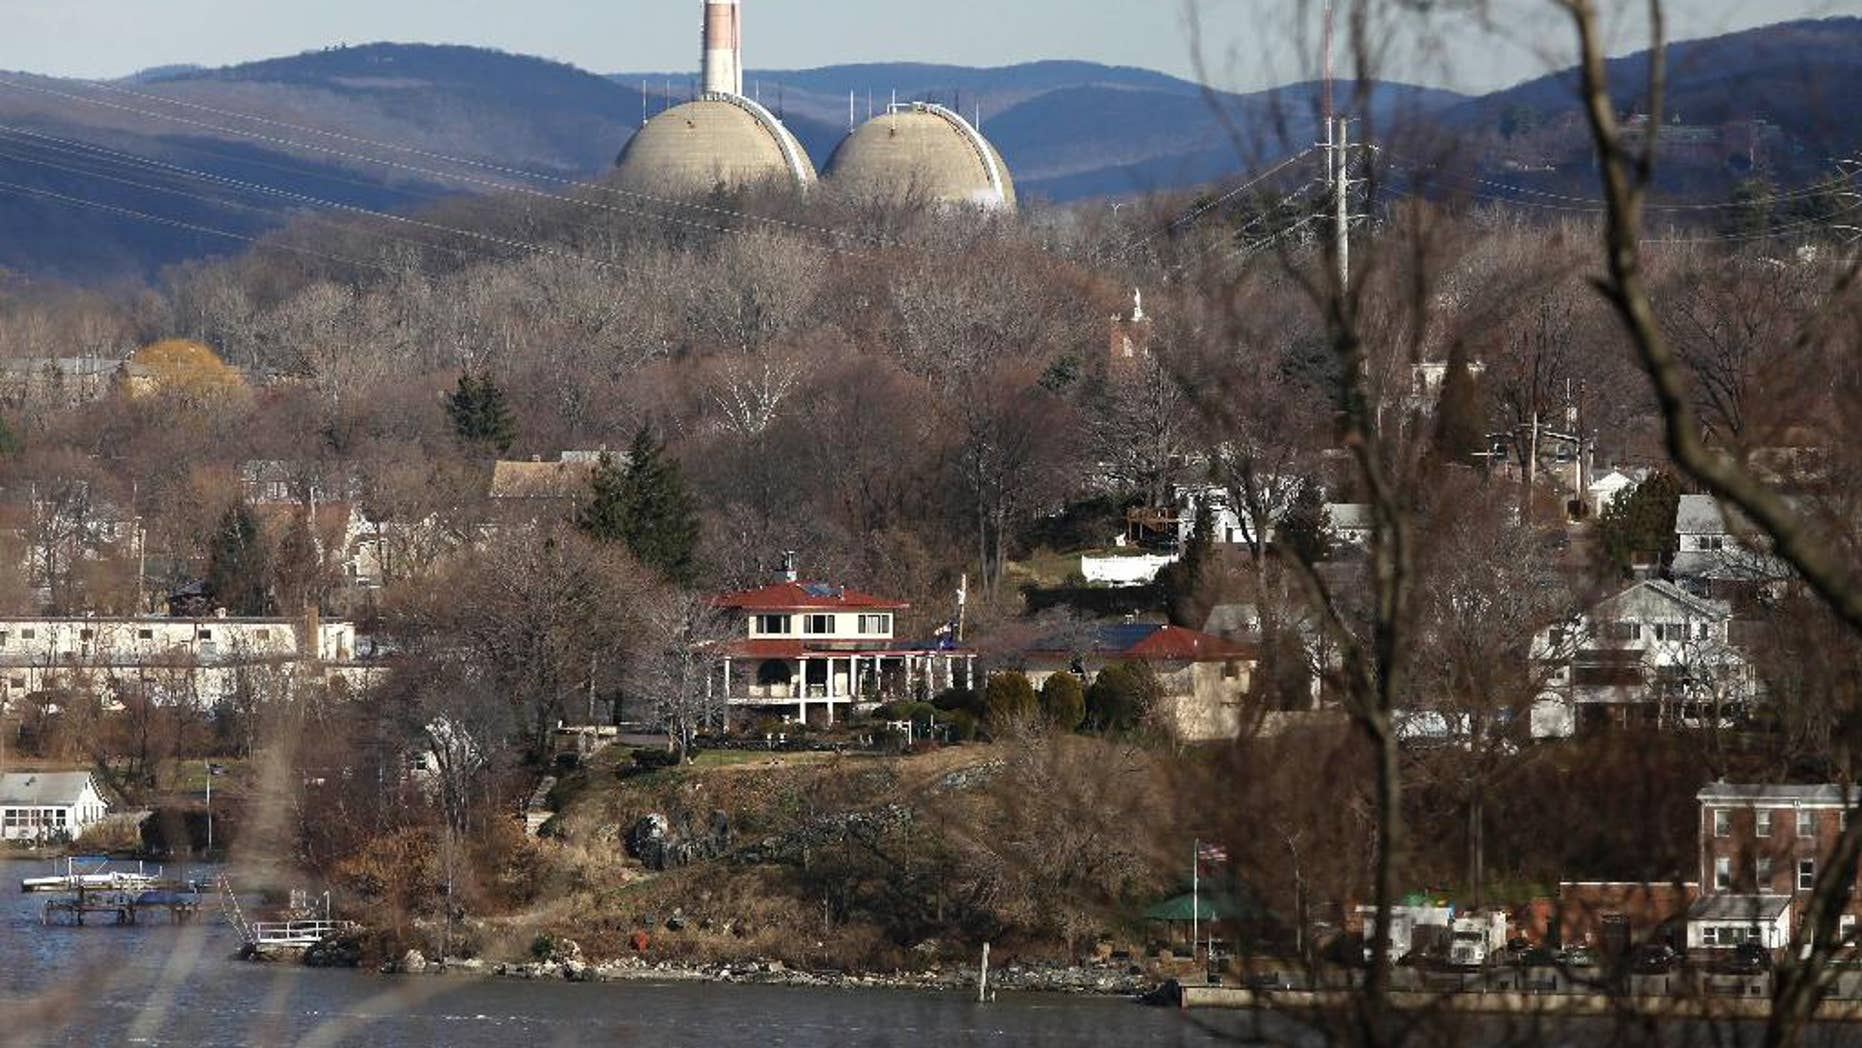 FILE - In this Wednesday, Dec. 16, 2009 photo, reactor containment domes of the Indian Point nuclear power plant in Buchanan, N.Y. rise above homes just north of the town of Verplanck, N.Y. as seen from the Stony Point Historic Site. The aging facility just north of New York City will close by April 2021 under a deal with Gov. Andrew Cuomo, who has long argued it should be shuttered to protect the millions of people living nearby. (AP Photo/Julie Jacobson)